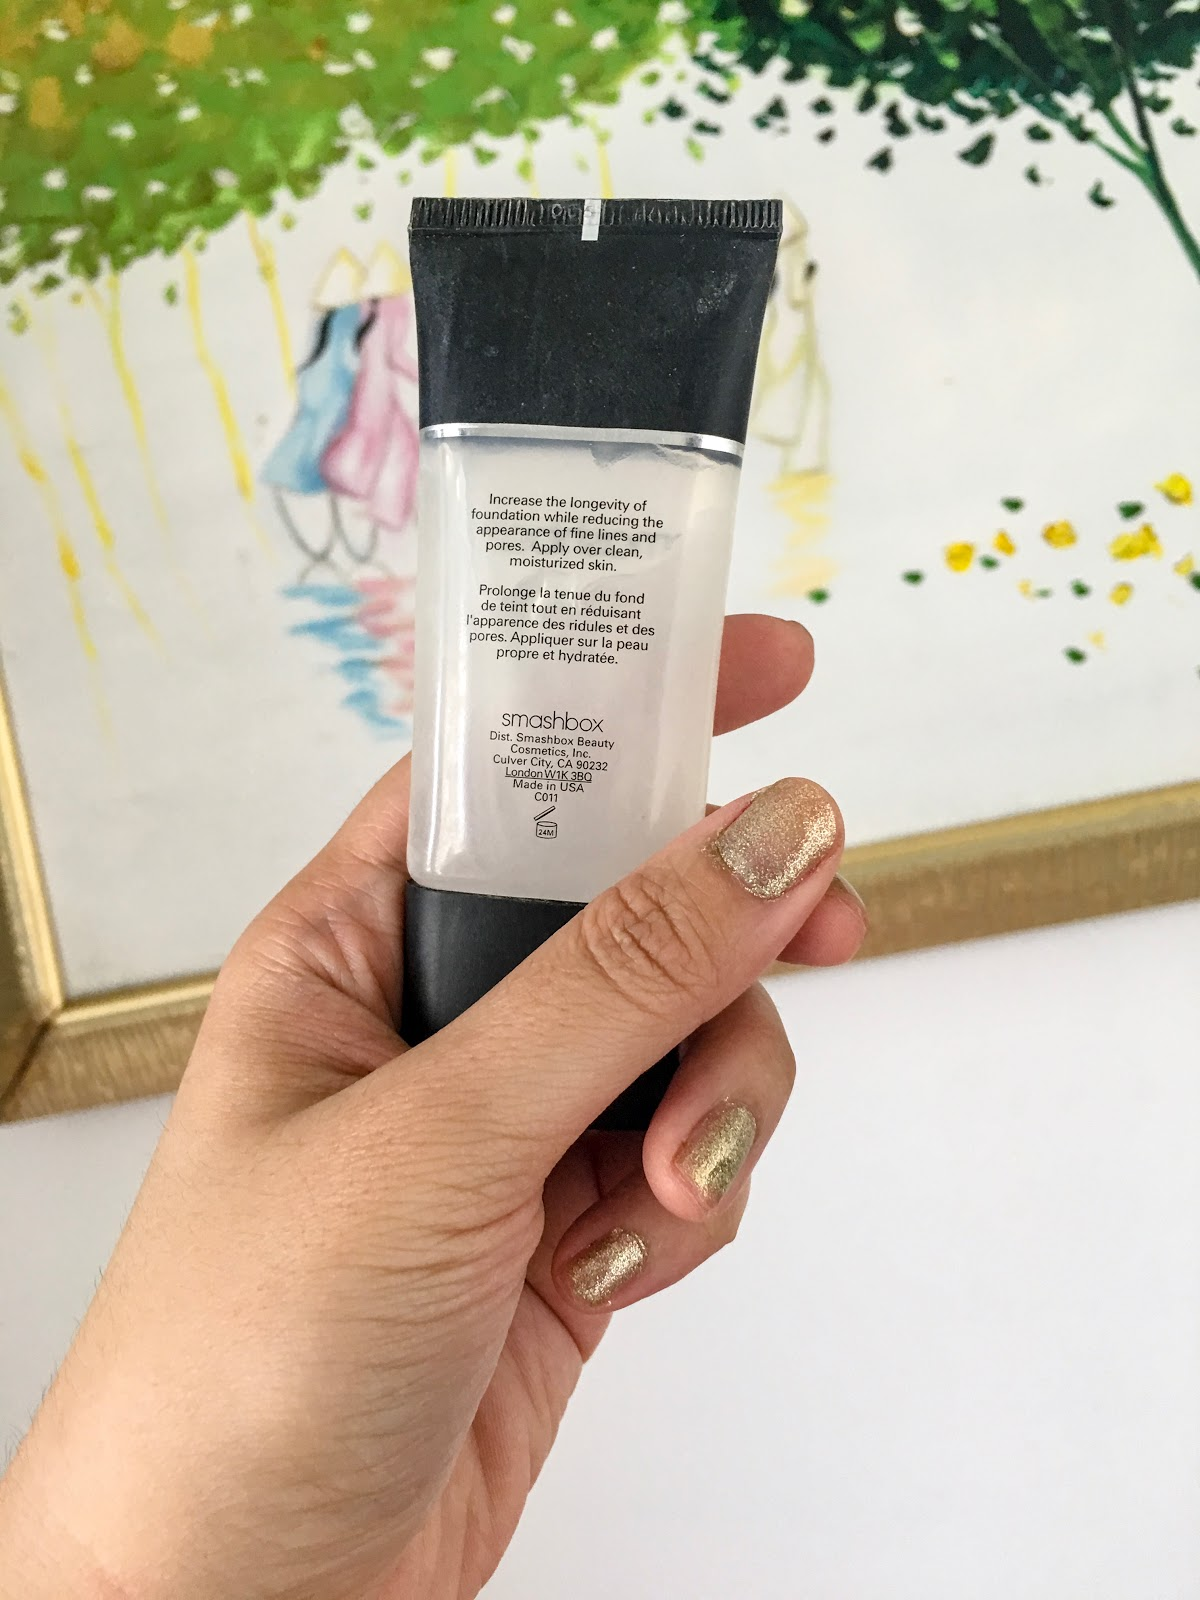 WORTH IT or THROW IT: SMASHBOX PHOTO FINISH PRIMER review